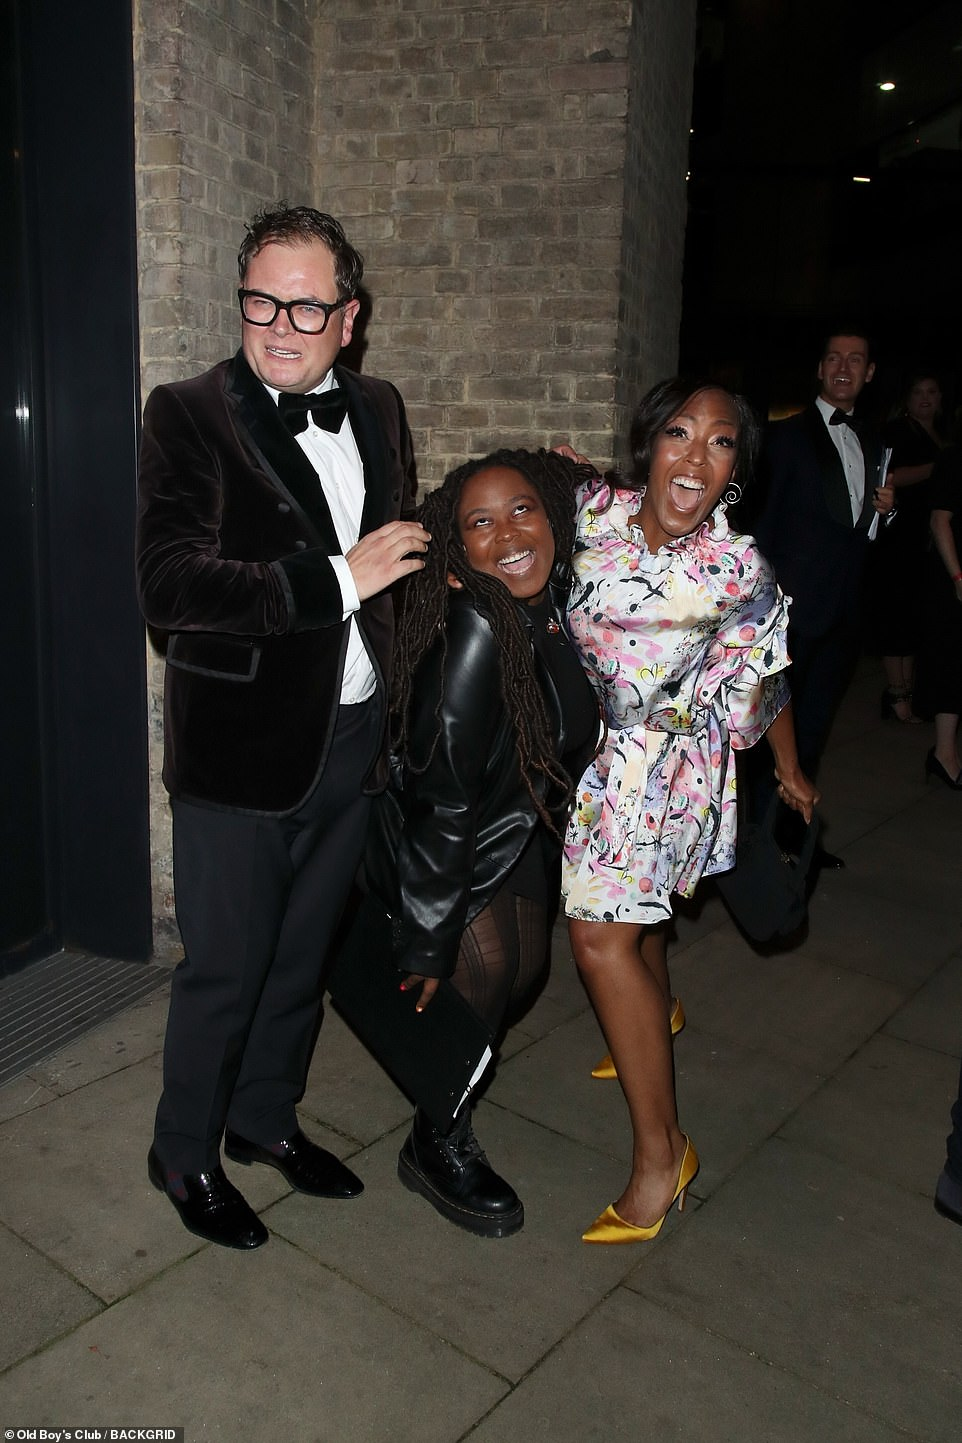 Party time: Alan looked great the event as he posed with pictures with Angelica Bell